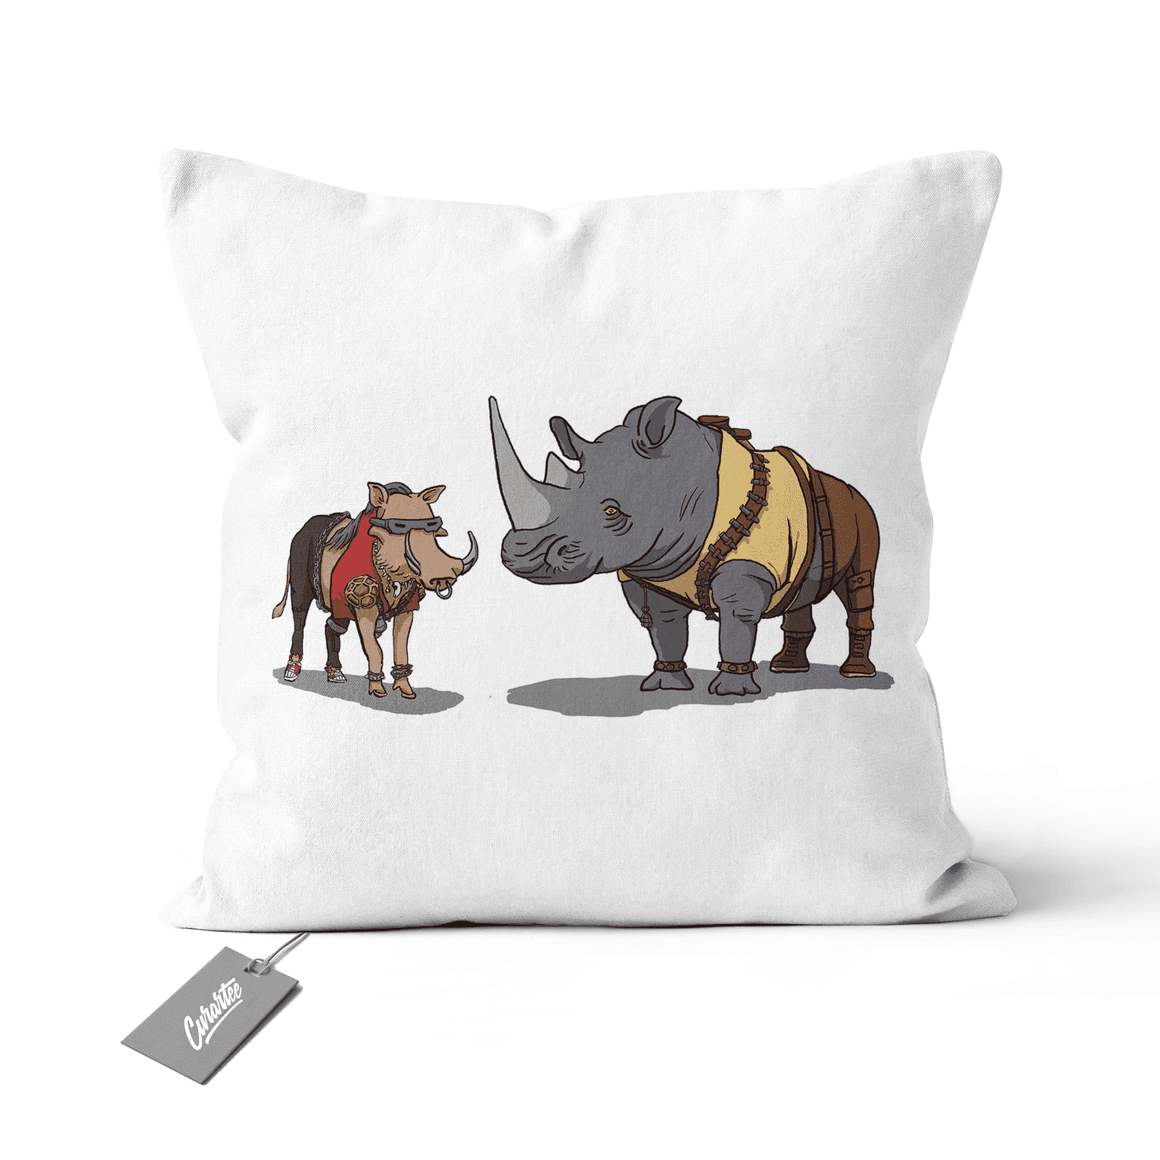 Bebop and Rocksteady Cushion - Premium Artwear Curartee